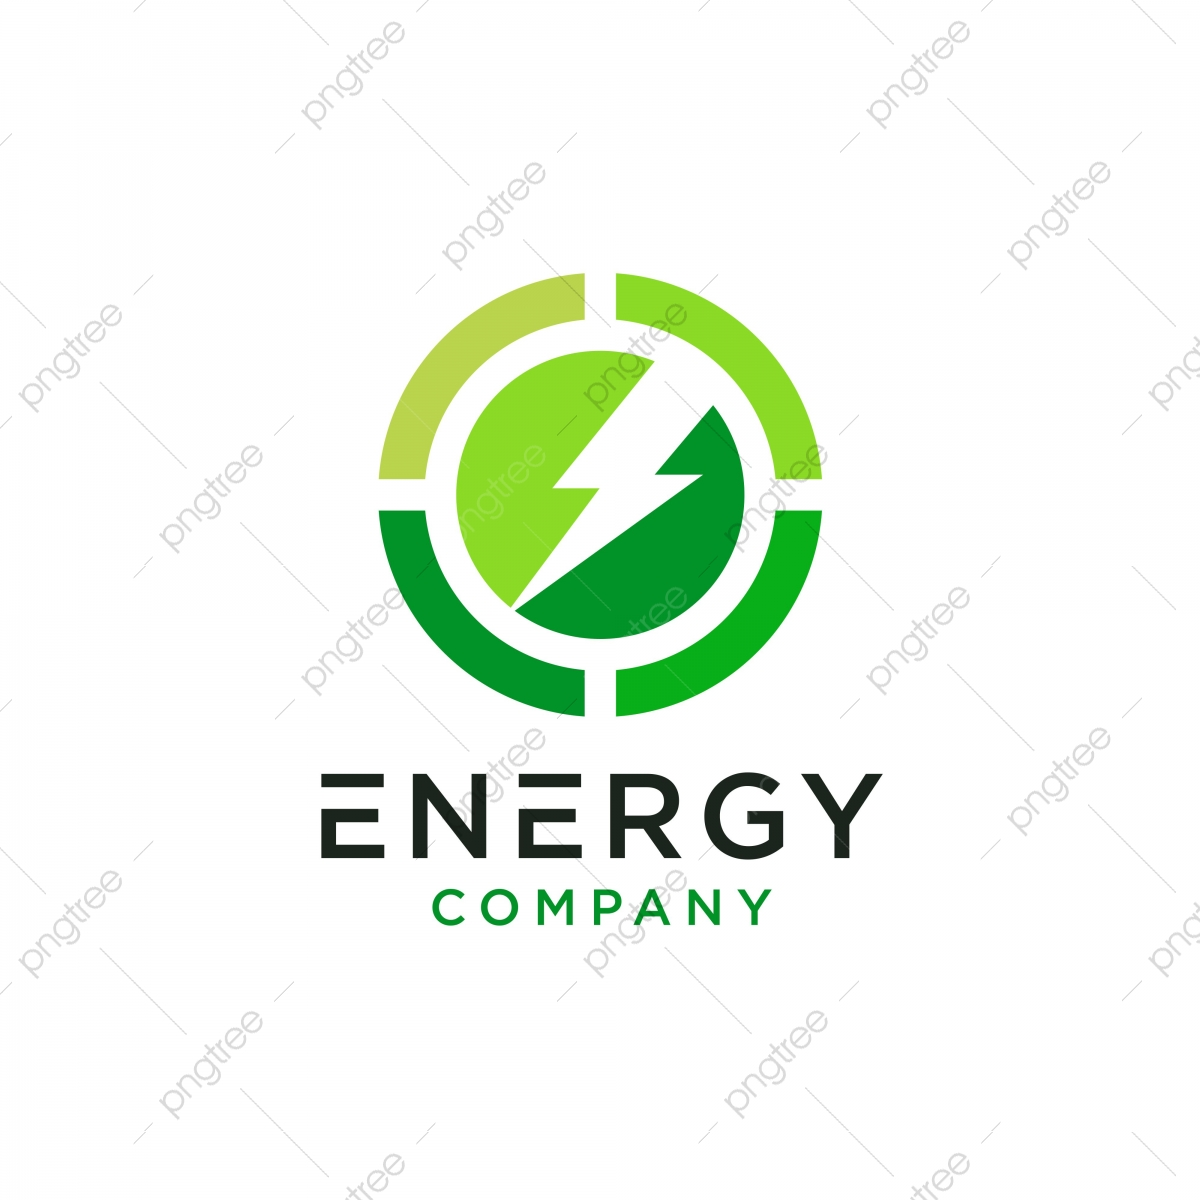 eco energy logo design logo icons energy icons eco icons png and vector with transparent background for free download https pngtree com freepng eco energy logo design 4154942 html